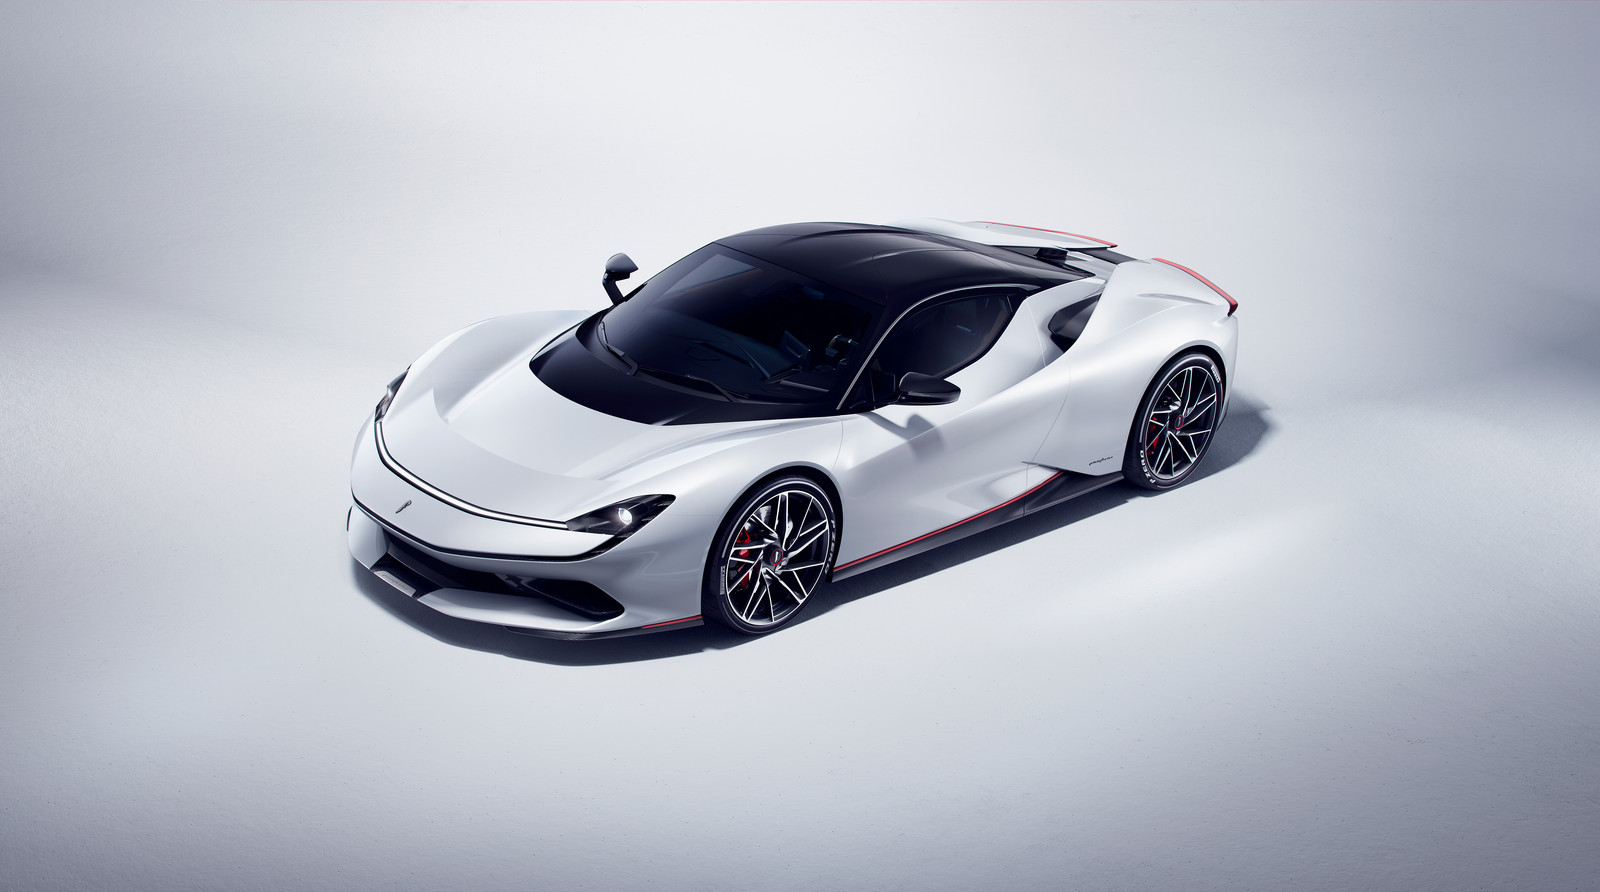 De Pininfarina Battista komt in 2020.